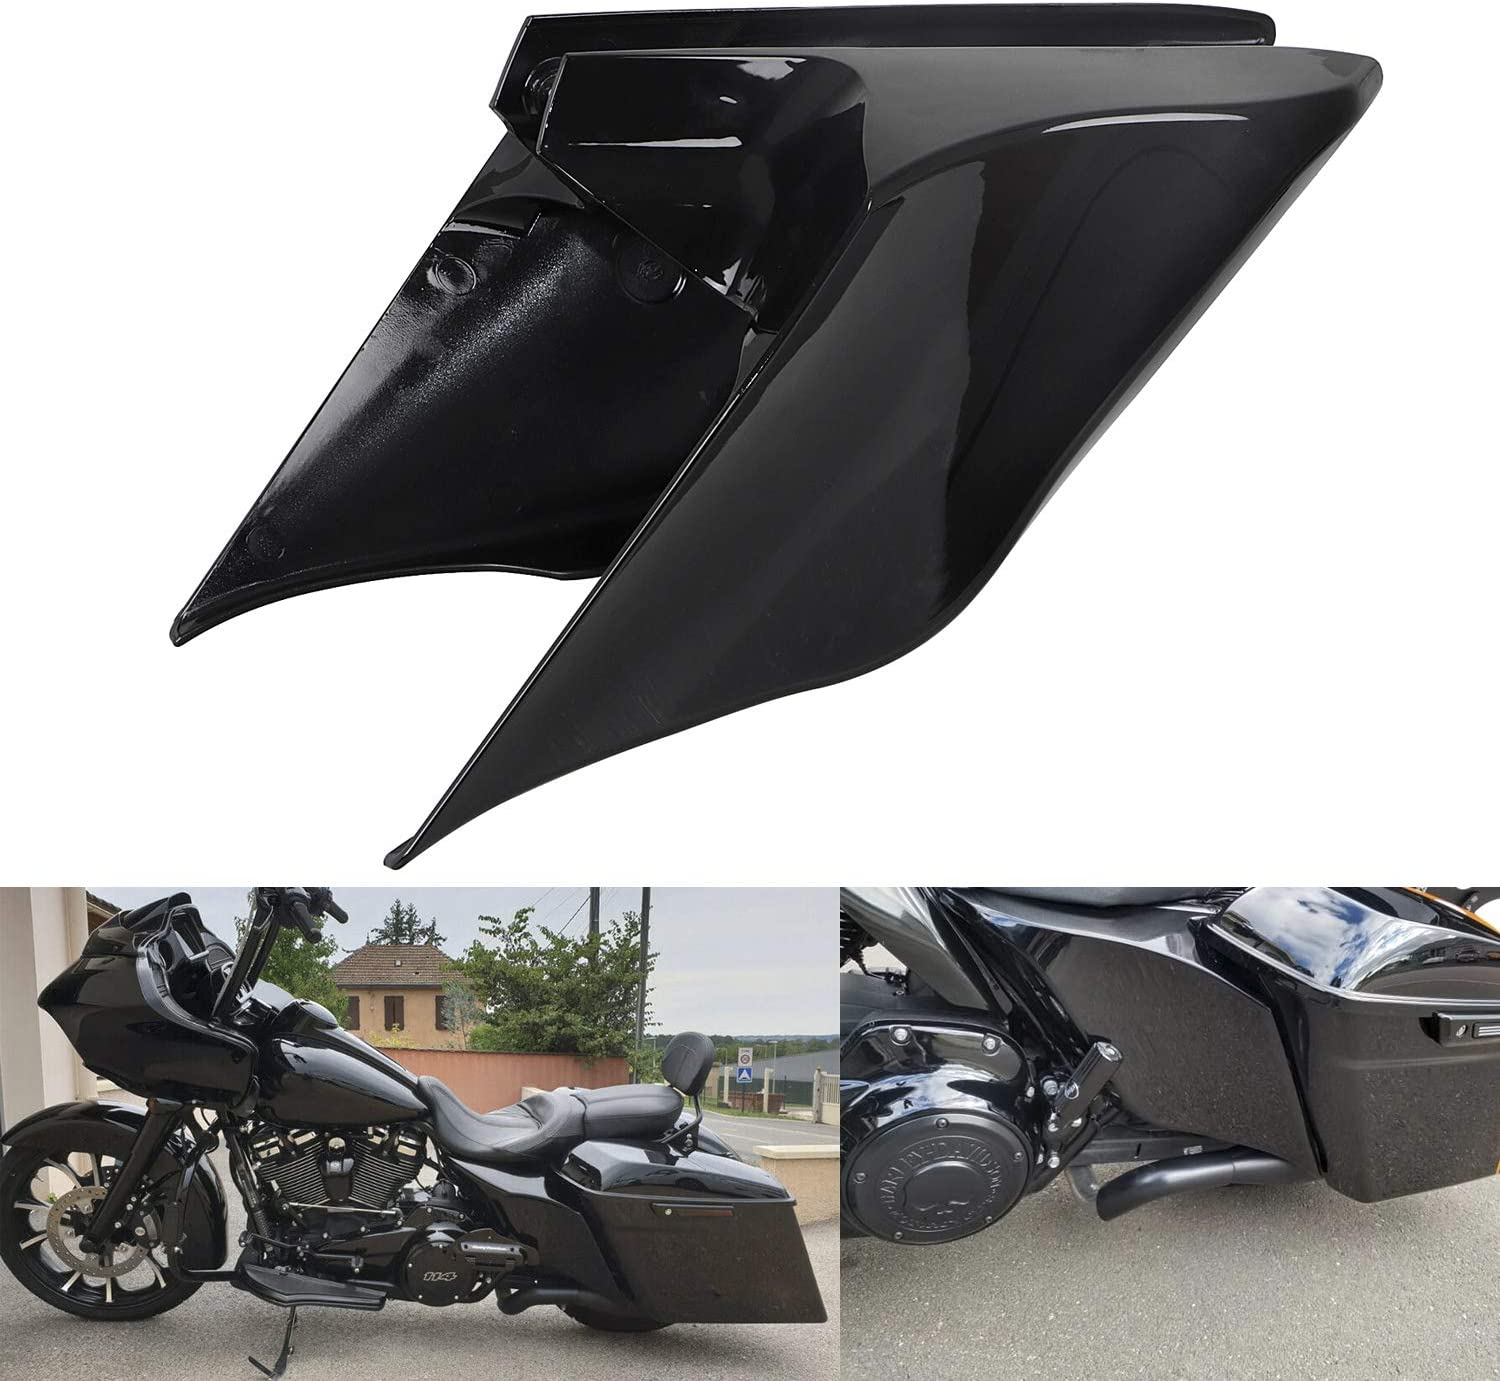 XMMT Gloss Vivid Black Stretched Panels Cover Extended Price reduction Comp Side Milwaukee Mall